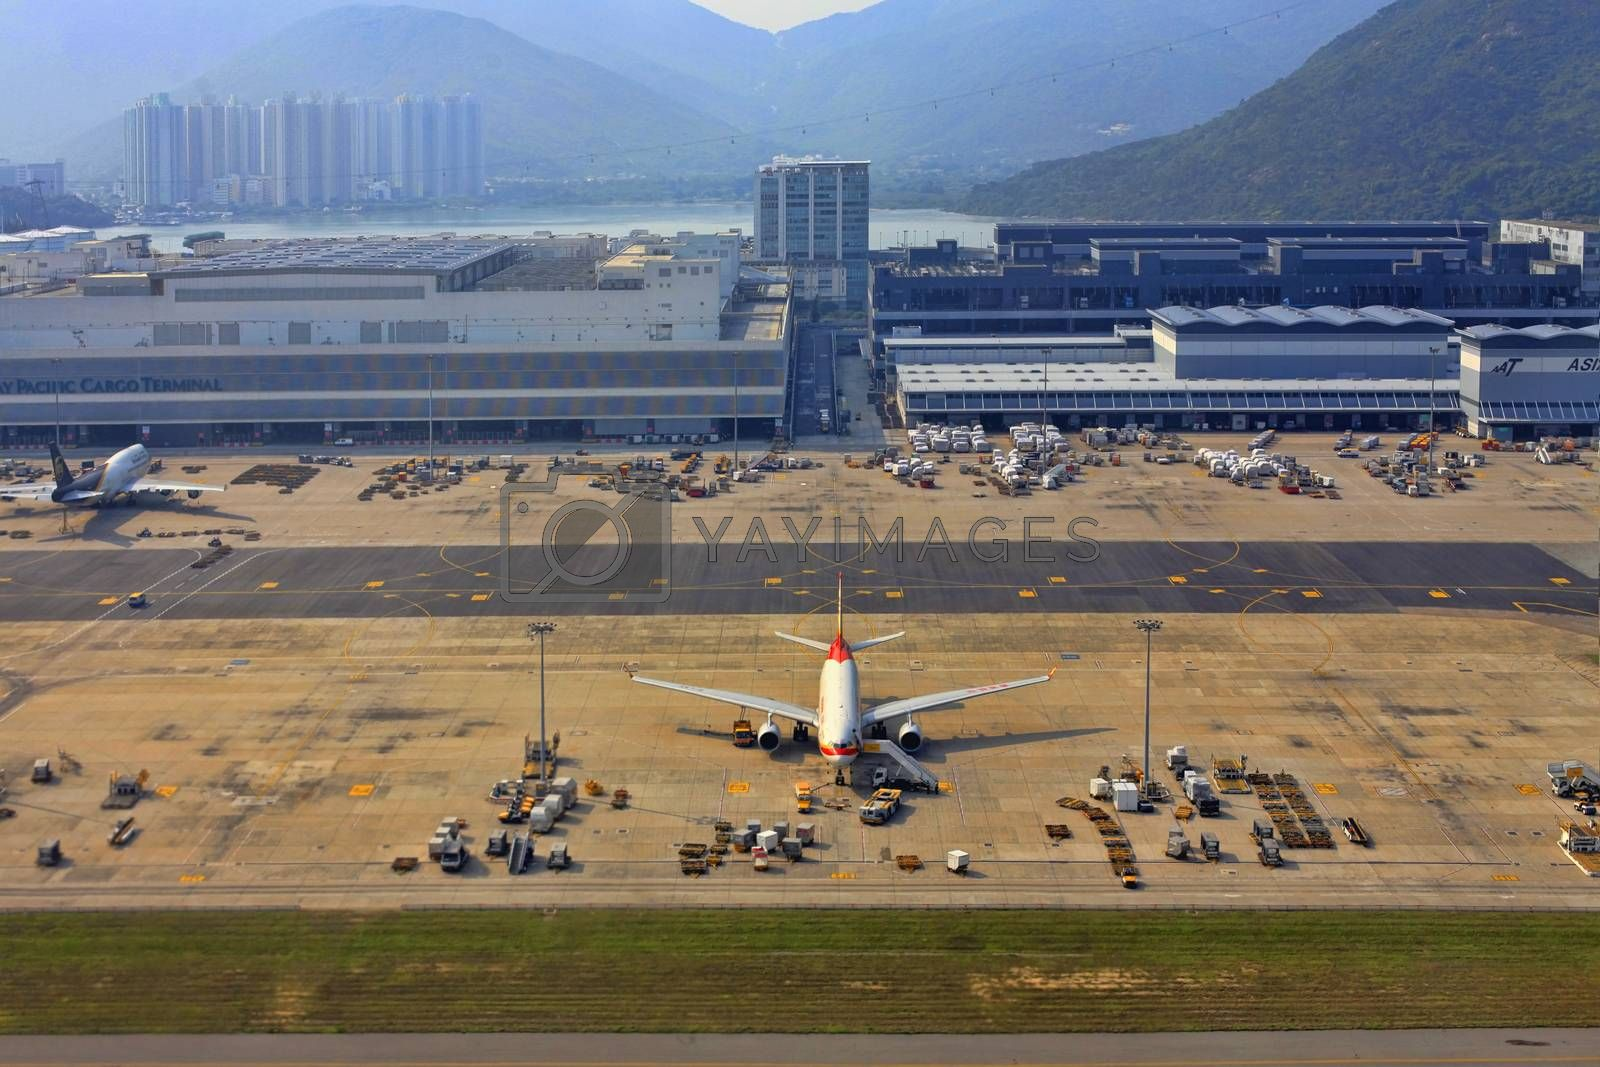 Hong Kong, HKG - APRIL 05, 2014: Cathey Pacific plane ready for boarding in Hong Kong Airport on 05 April 2014. Cathey Pacific was founded in 1946. This company bacome one of the famous airline in Hong Kong